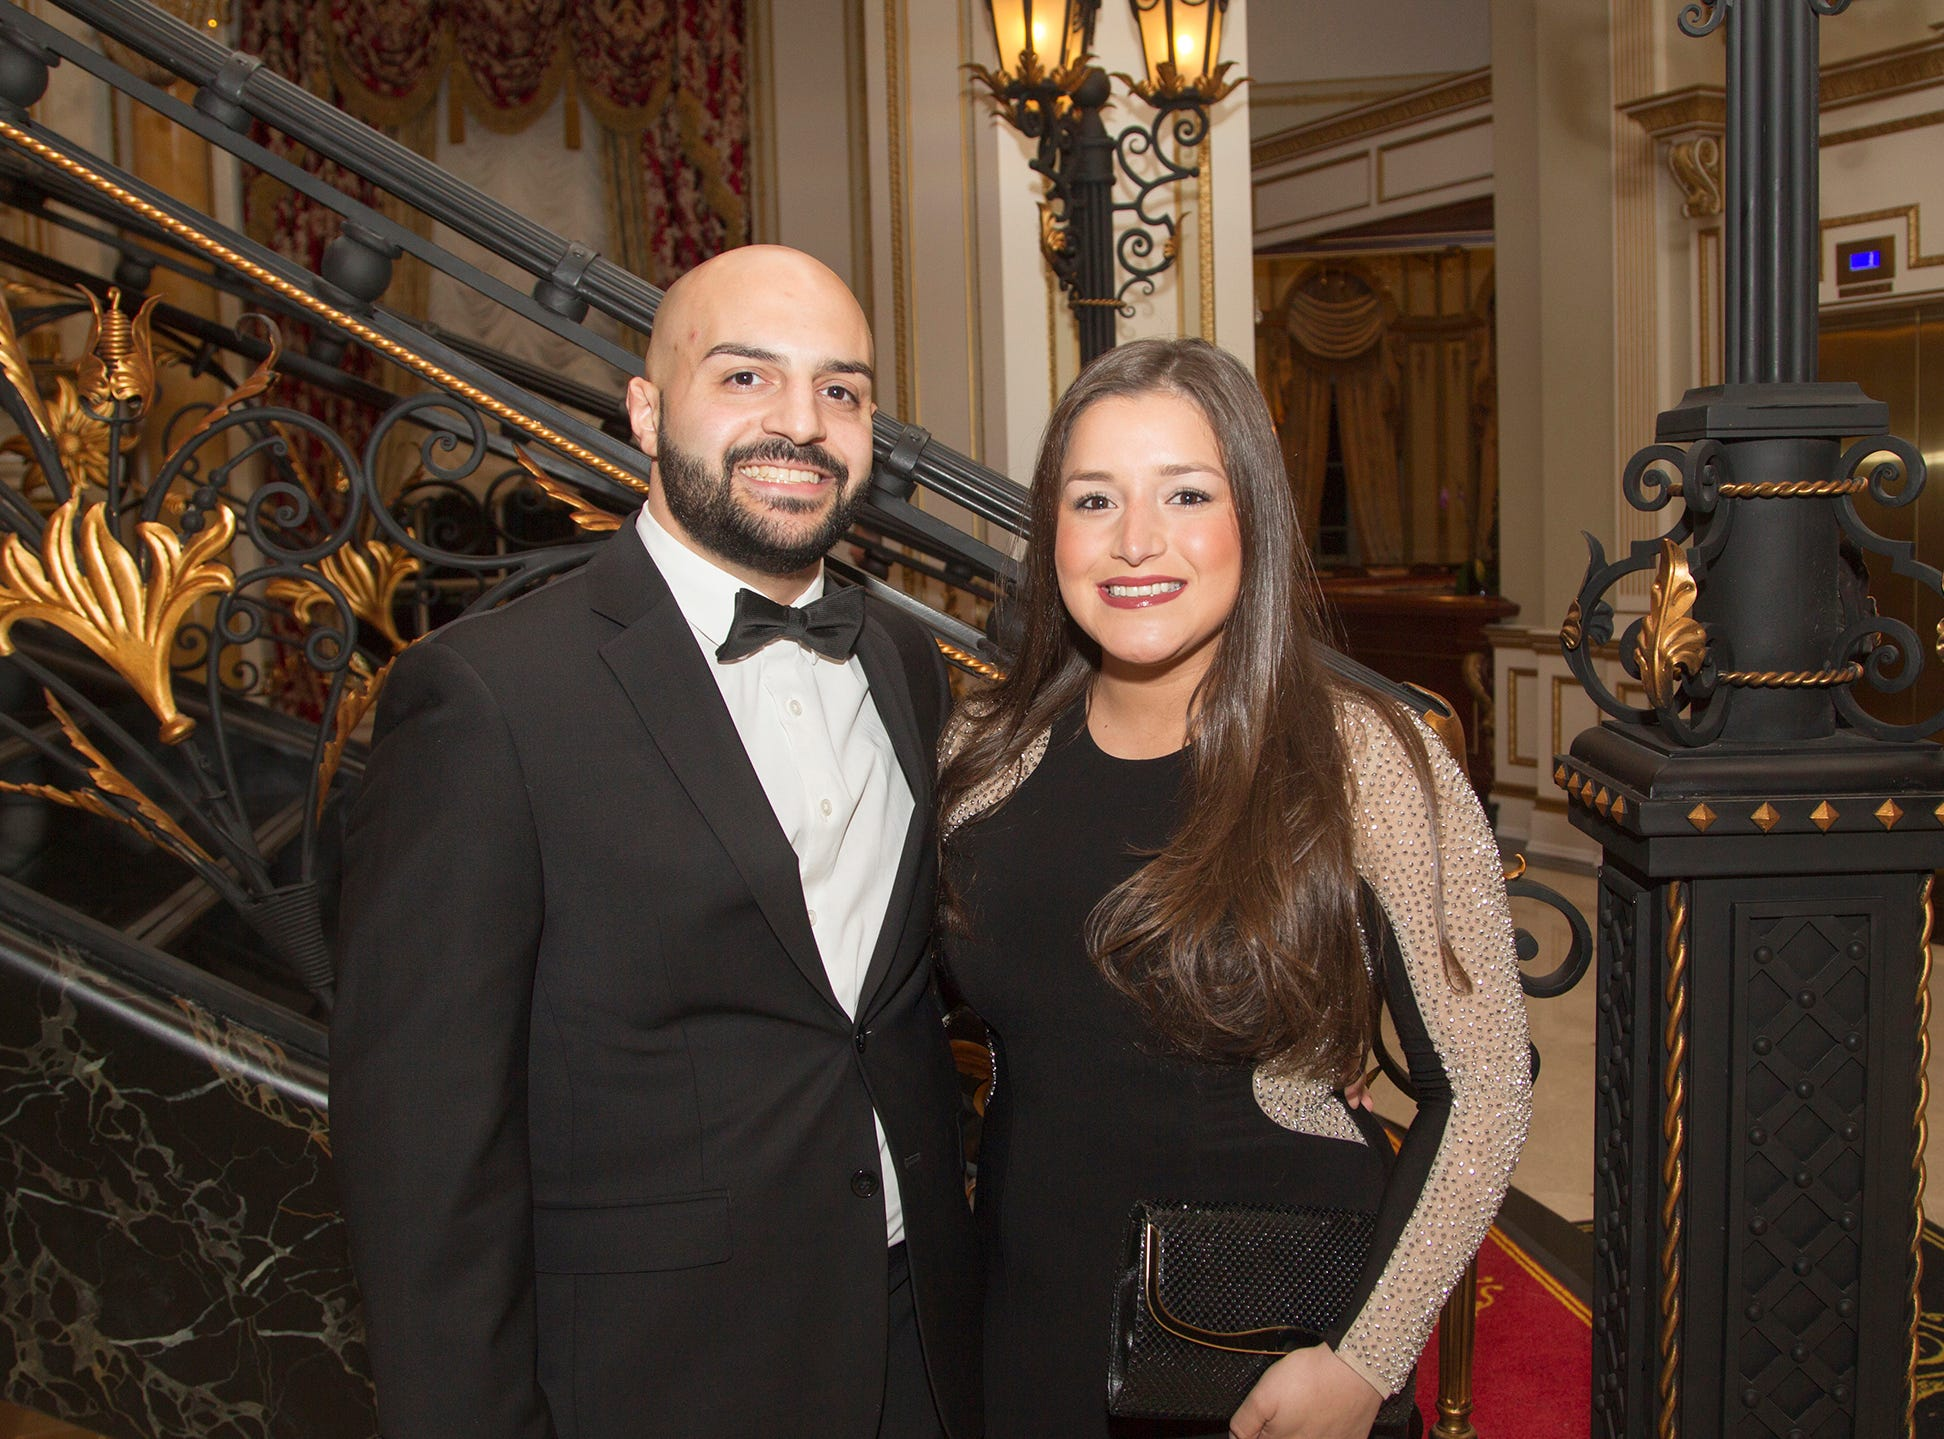 Miguel and Theresa Perez. The 72nd Annual Valley Ball gala at The Legacy Castle in Pompton Plains. 11/16/2018